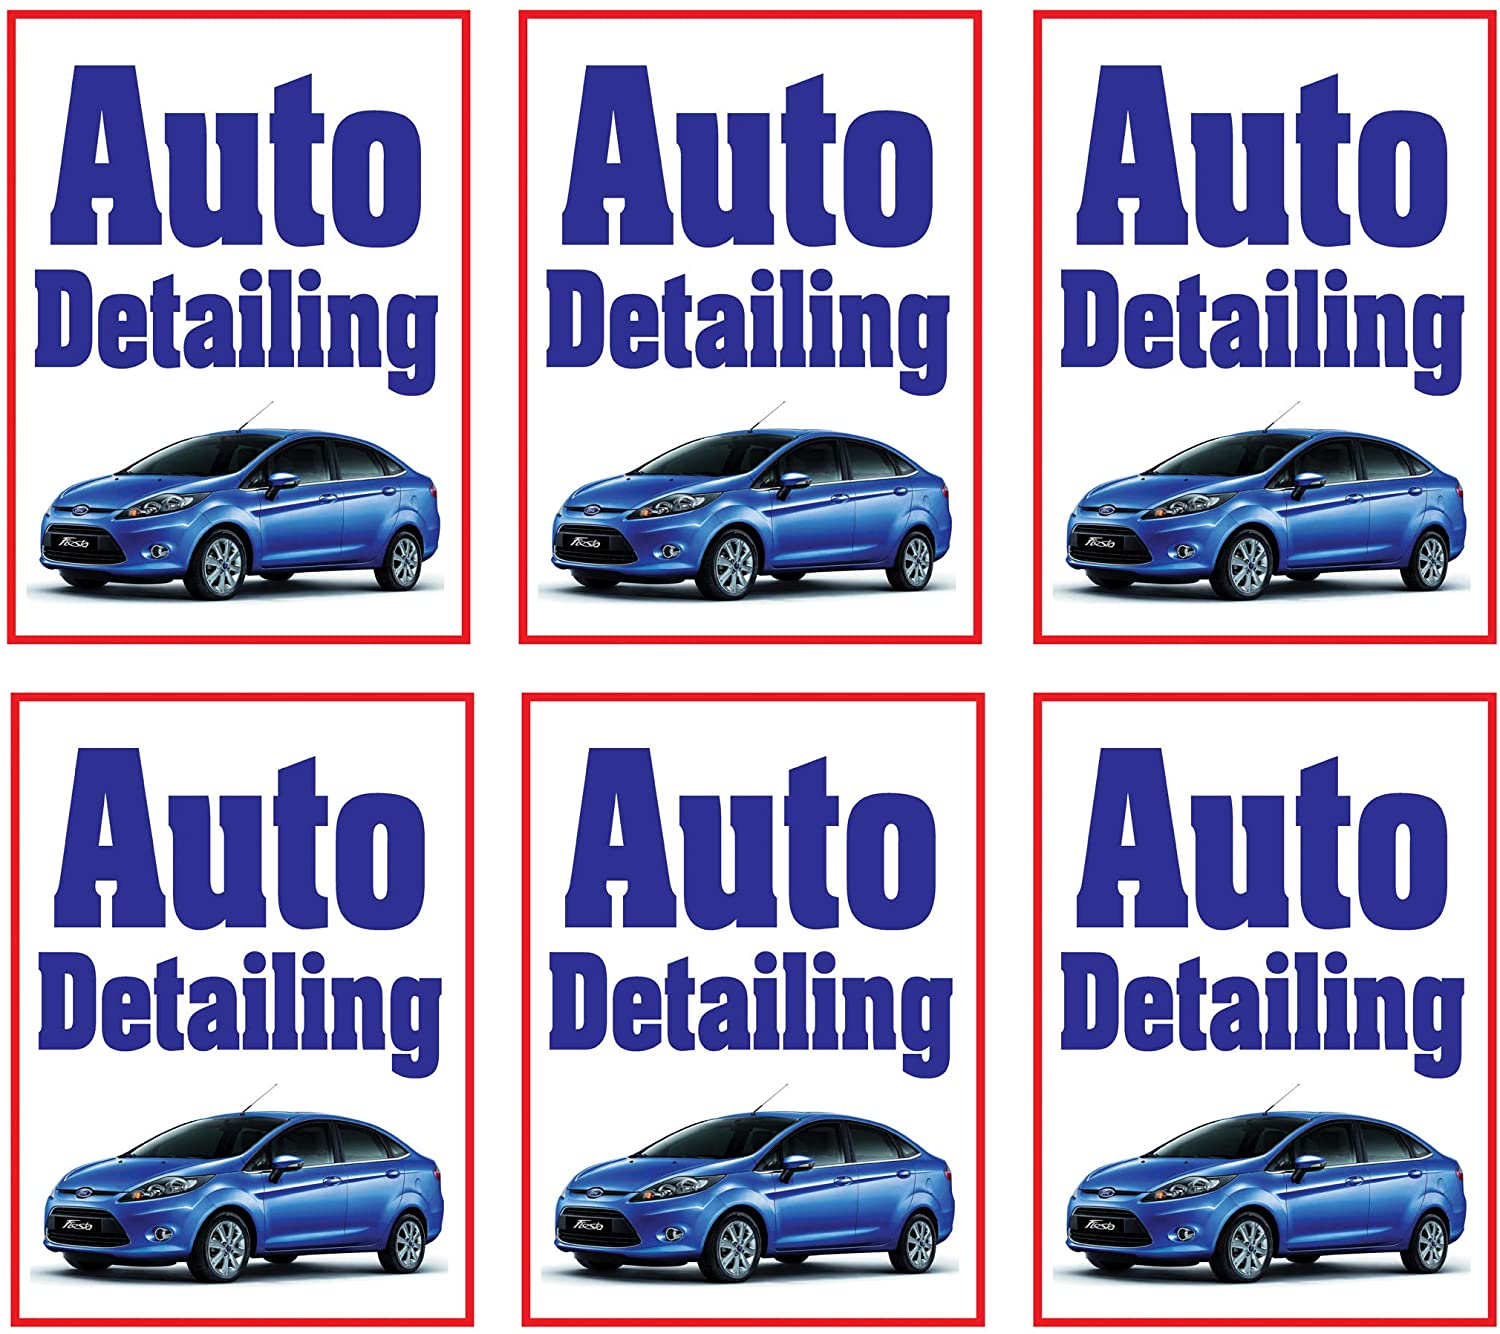 Auto Detailing | Large Store Window/Wall Retail Display Paper Signs | Full Color | 18w x 24h (6 Pack)